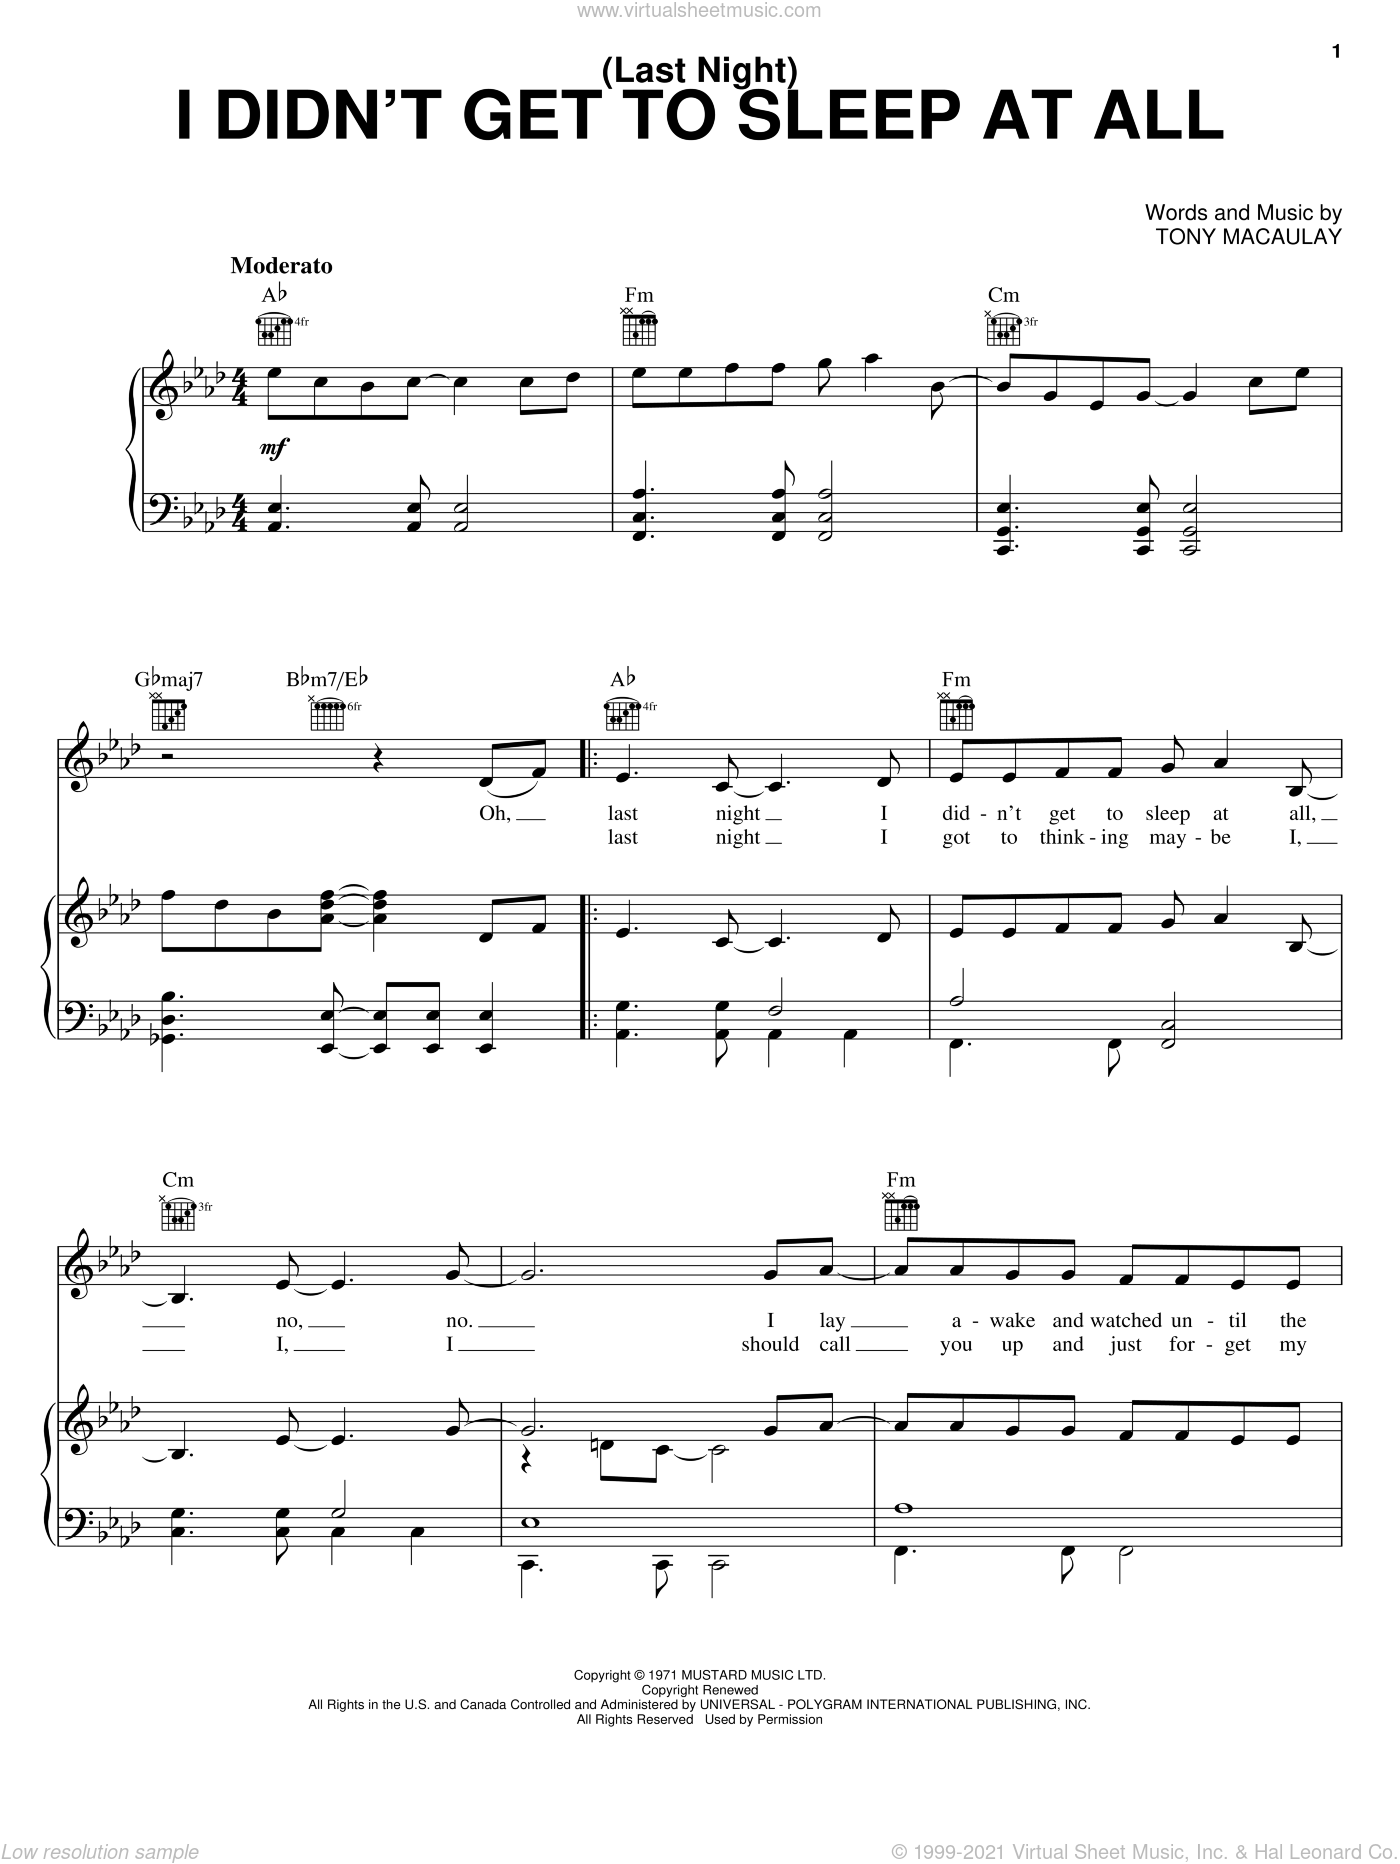 (Last Night) I Didn't Get To Sleep At All sheet music for voice, piano or guitar by Tony Macaulay